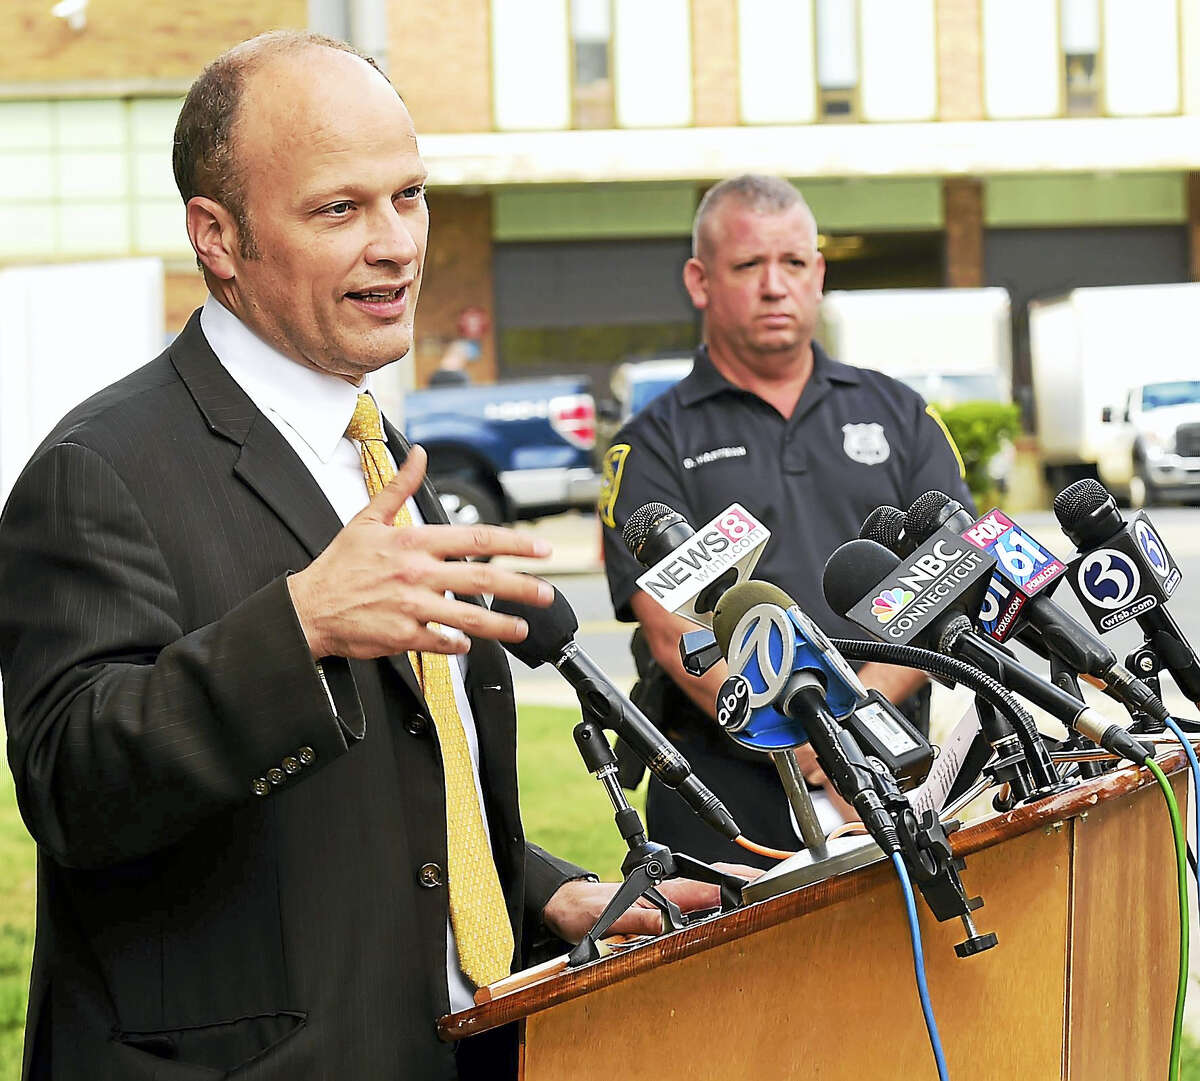 """New Haven Superintendent of Schools Garth Harries, left, speaks during a press conference Tuesday outside the Board of Education office in New Haven to answer questions about the investigation into """"intangible"""" threats to New Haven schools by an Instragram account showing menacing clown photos and messages. At right is New Haven police spokesman Officer David B. Hartman."""